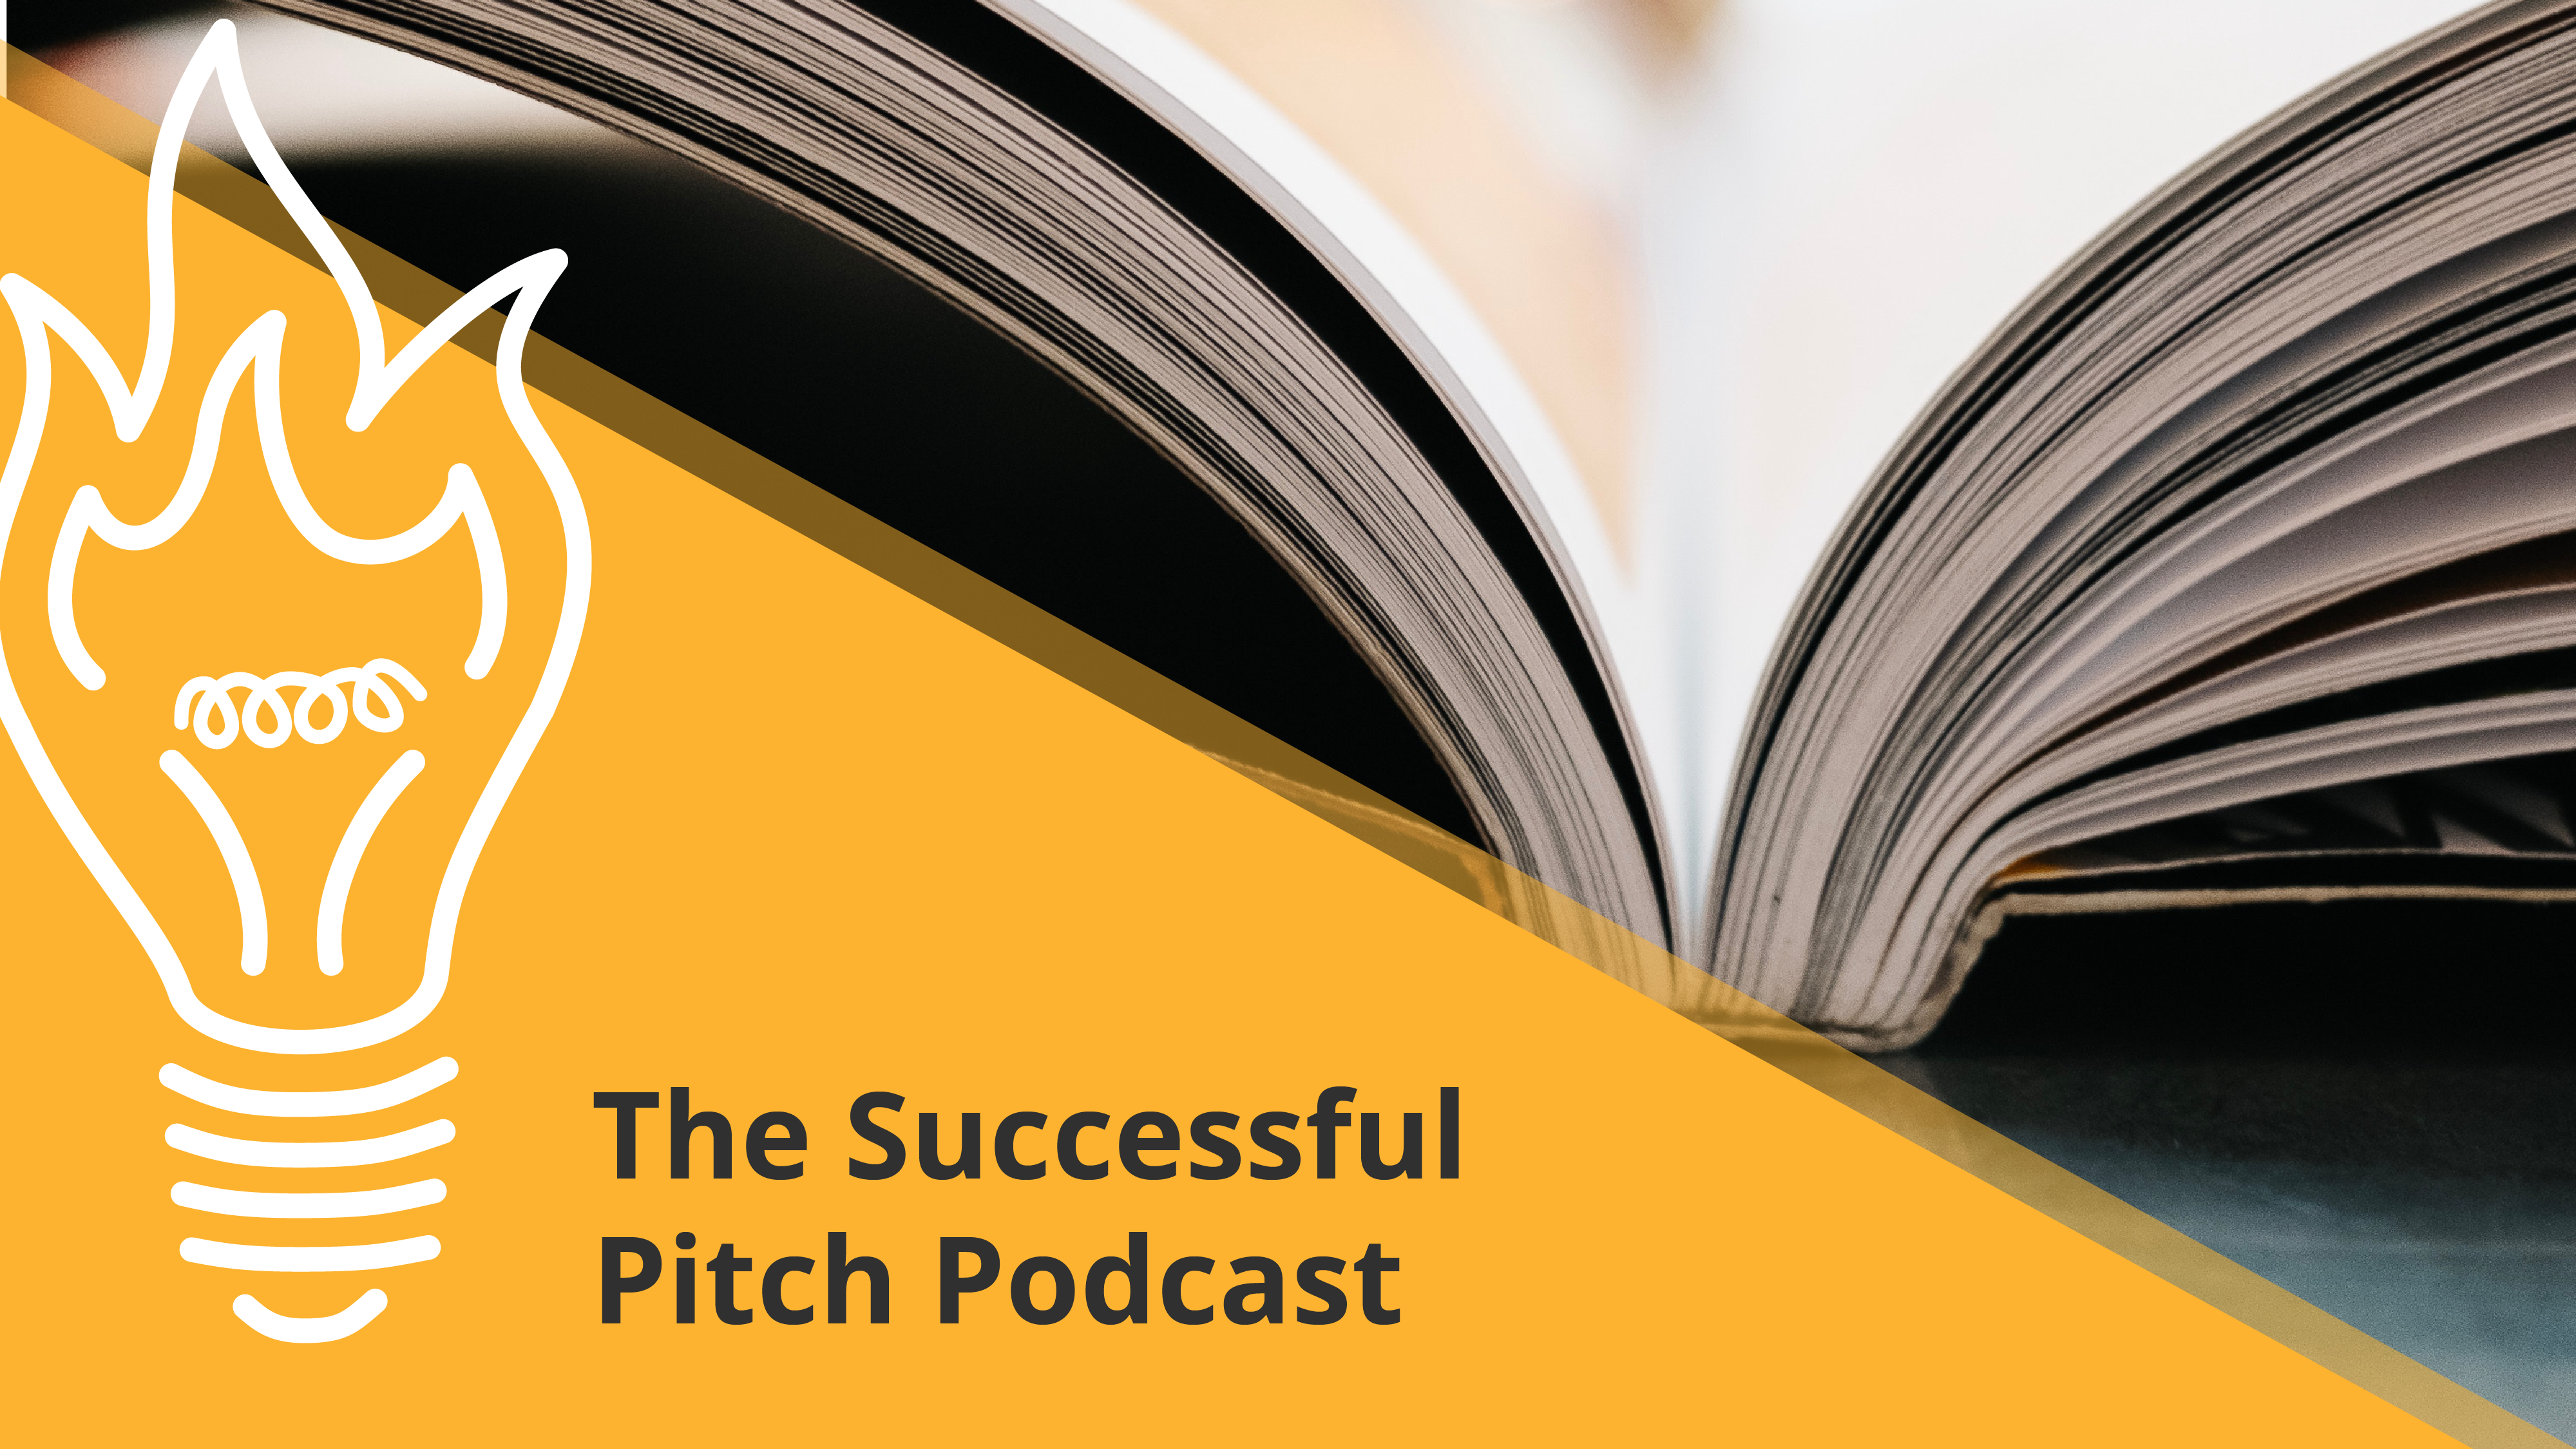 Pitch deck podcast